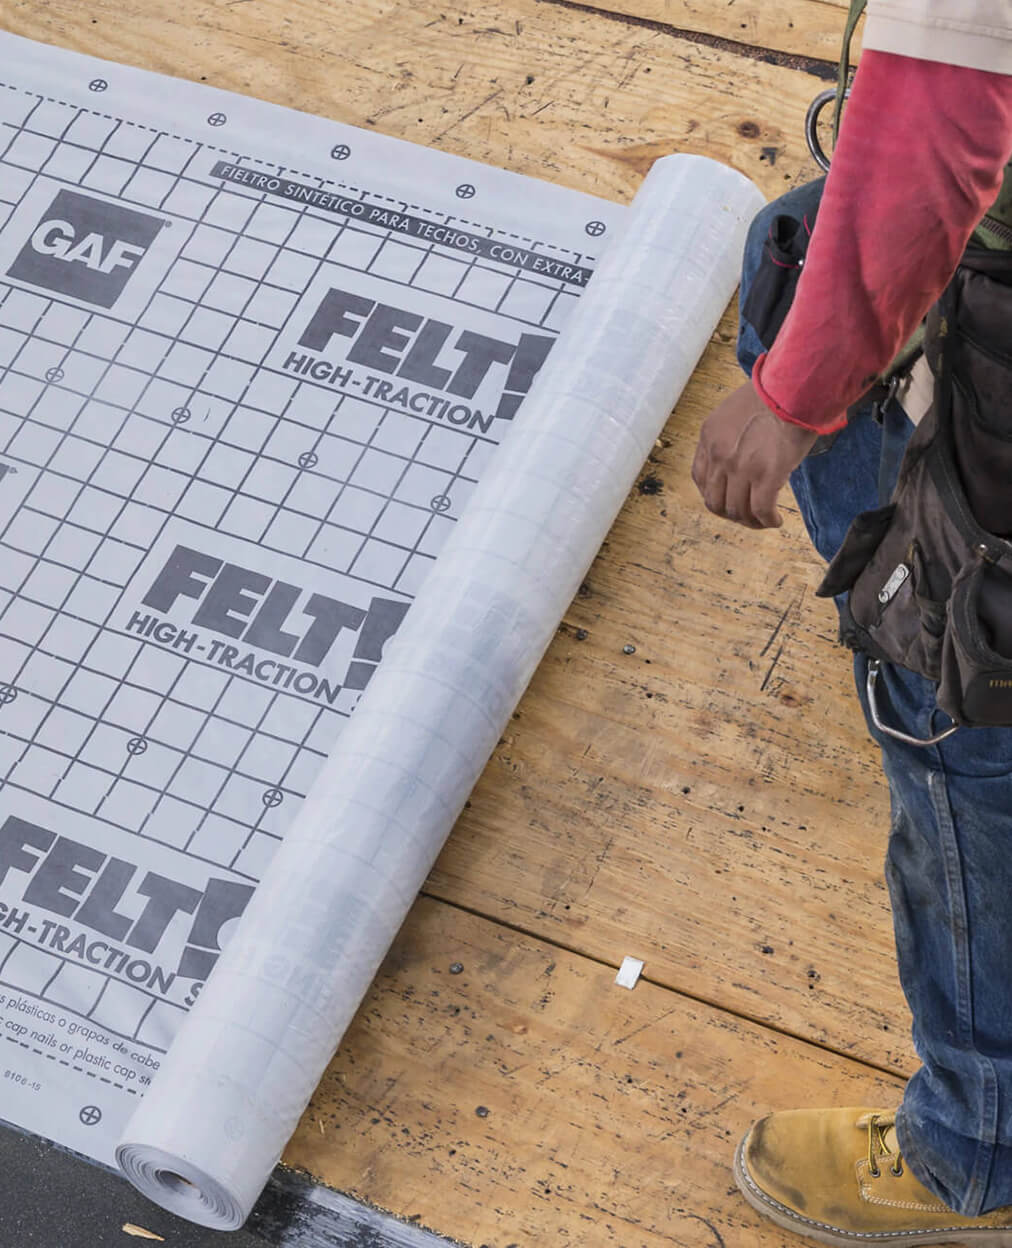 A roofer laying down GAF underlayment.